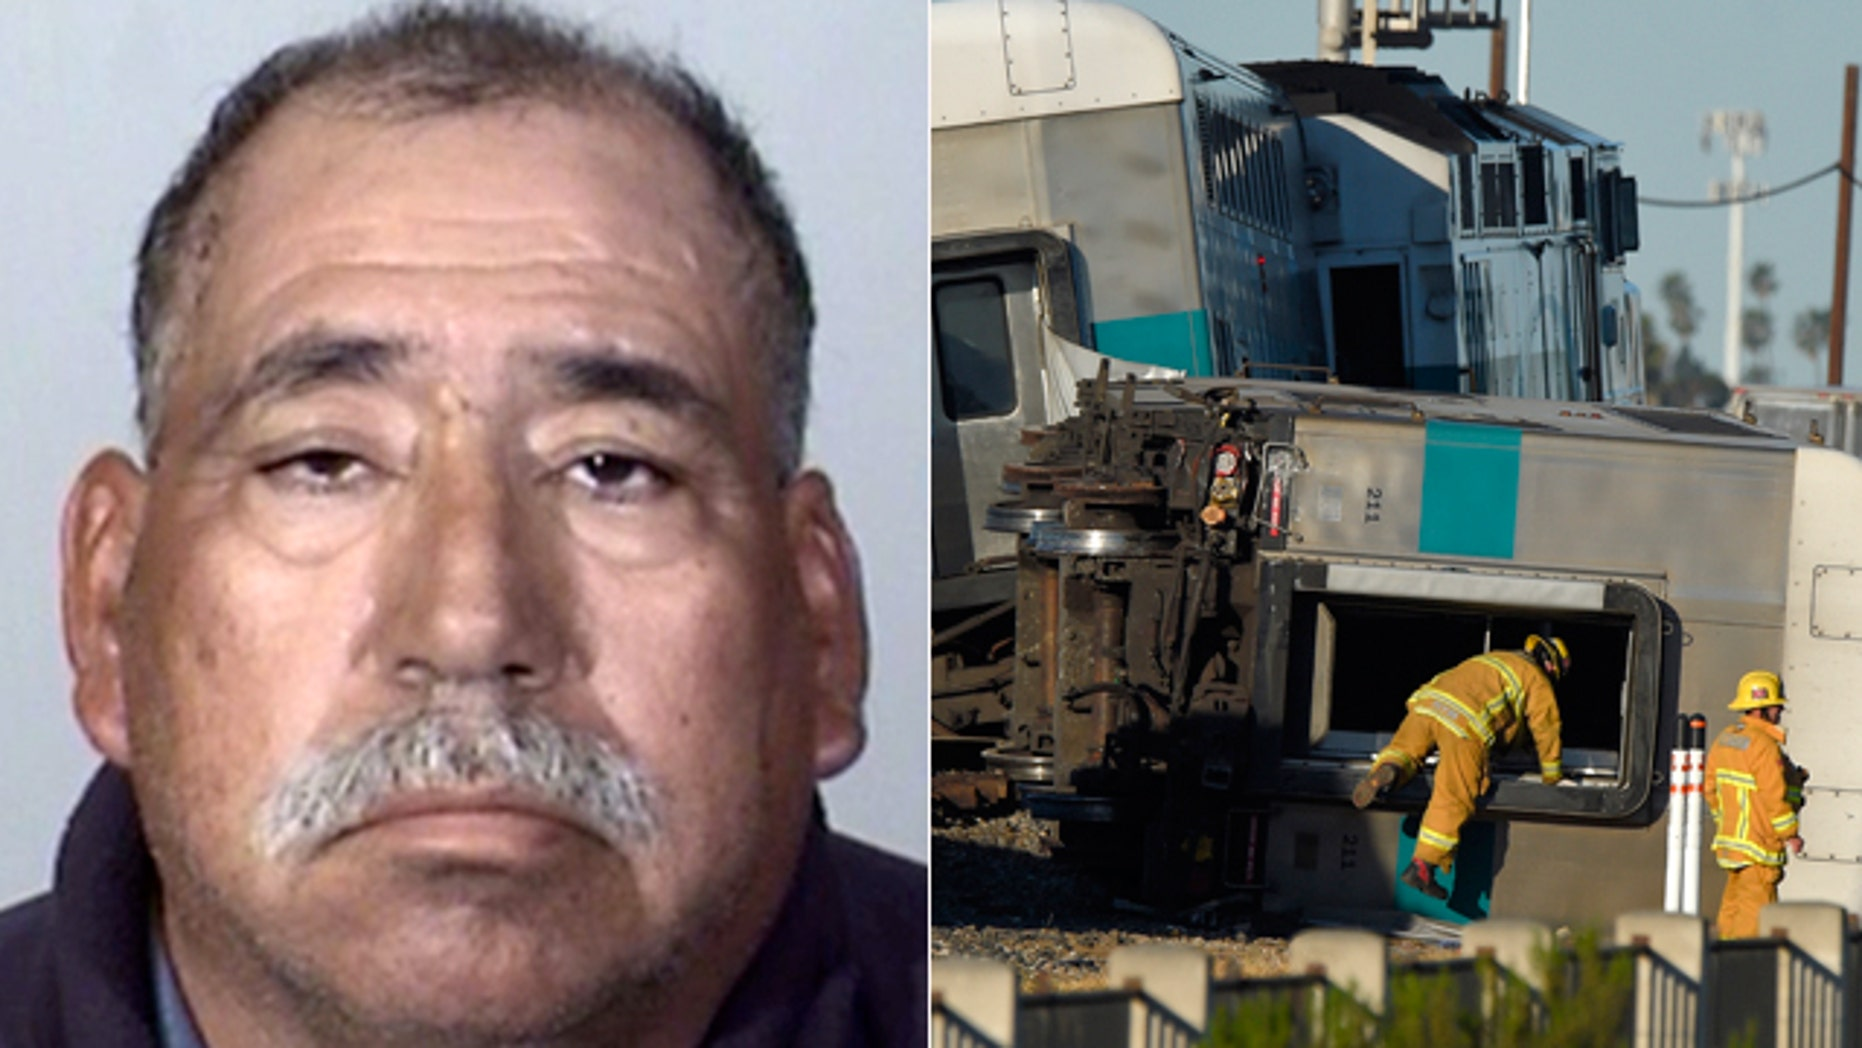 This booking photo provided by the Oxnard Police Department shows Jose Alejandro Sanchez-Ramirez, 54, of Yuma, Arizona, who was the driver of a pickup truck that a Southern California commuter train smashed into on Tuesday (right). (AP Photo/Oxnard Police Department)